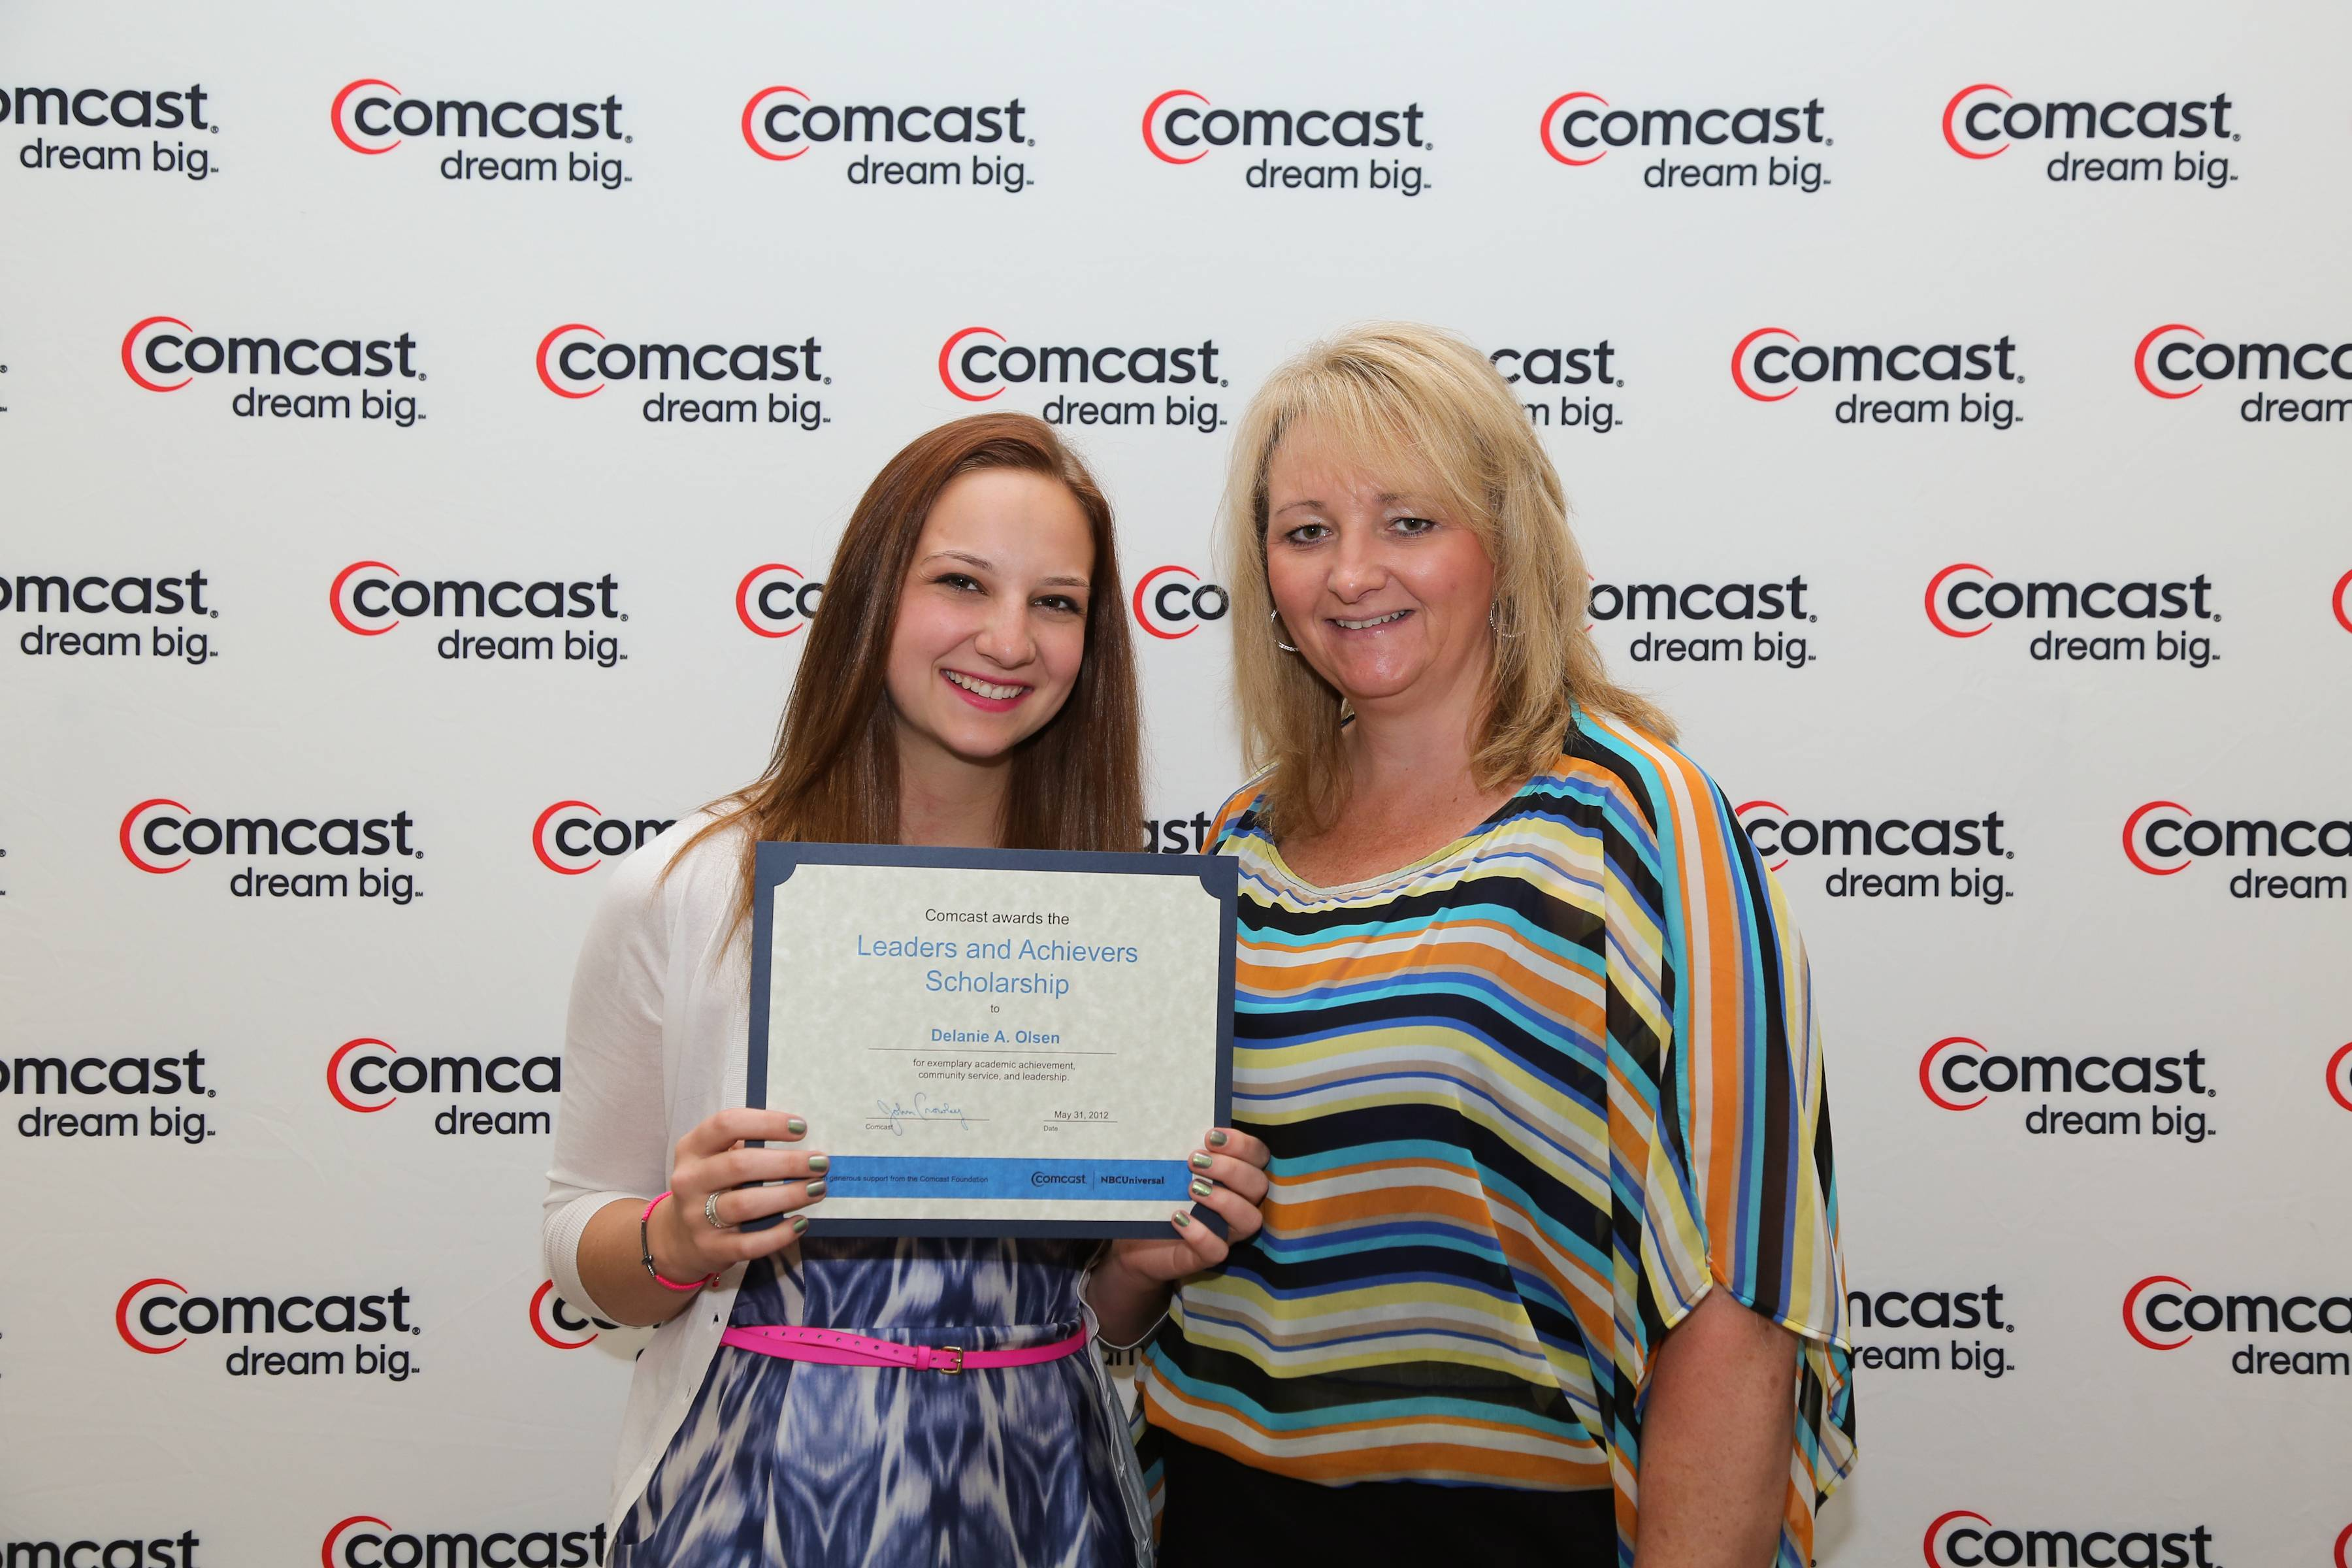 Delanie Olsen accepts a $1,000 Comcast Leaders and Achievers Scholarship